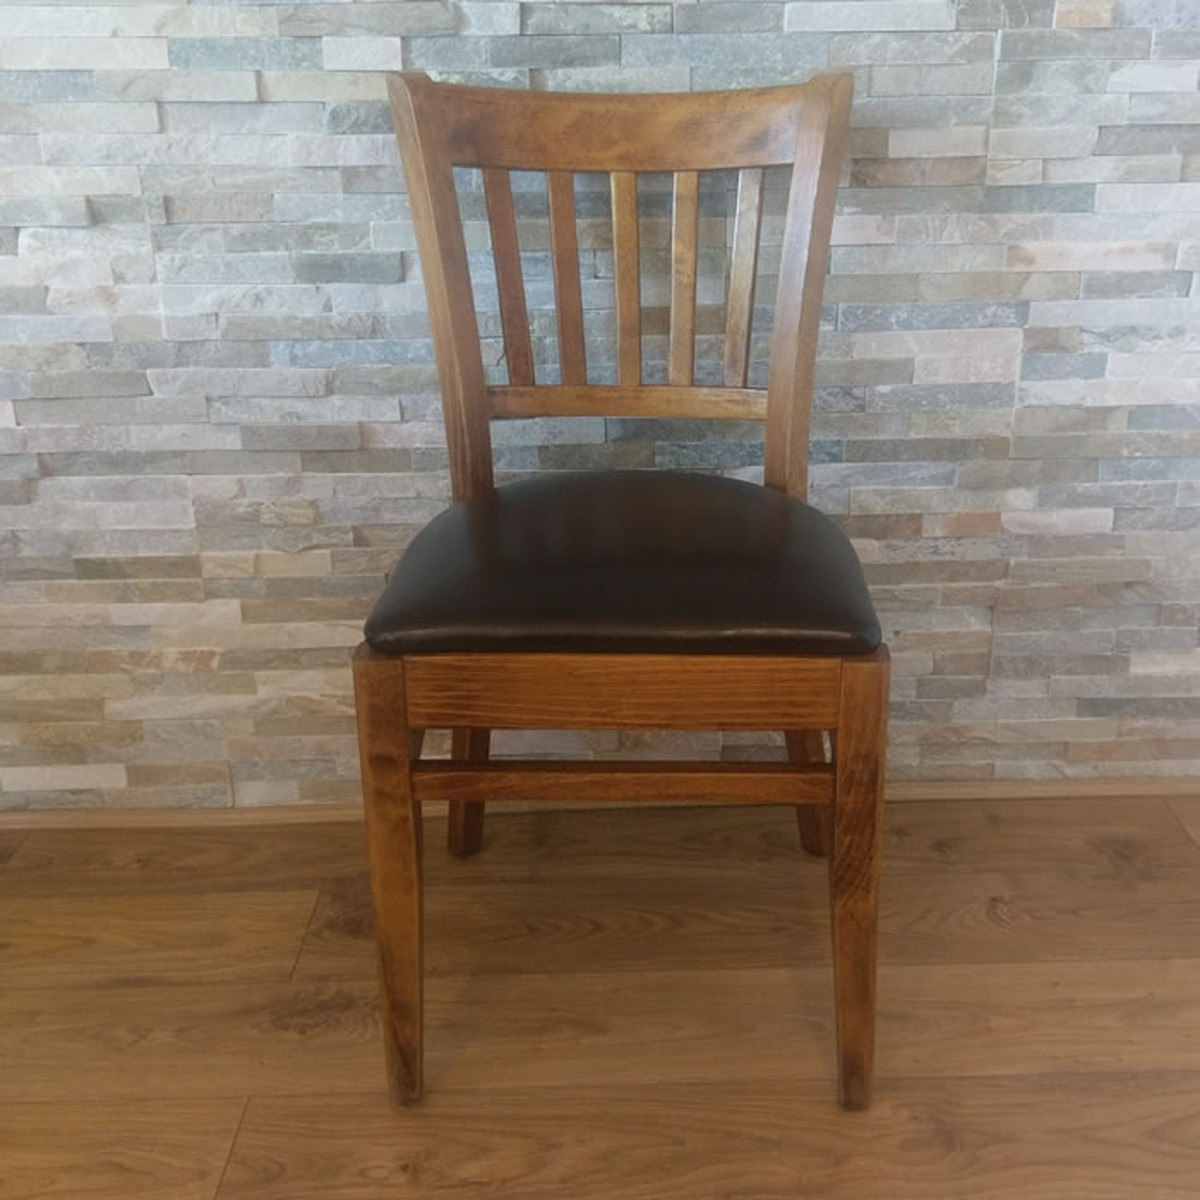 Secondhand Hotel Furniture Dining Chairs Used Houston